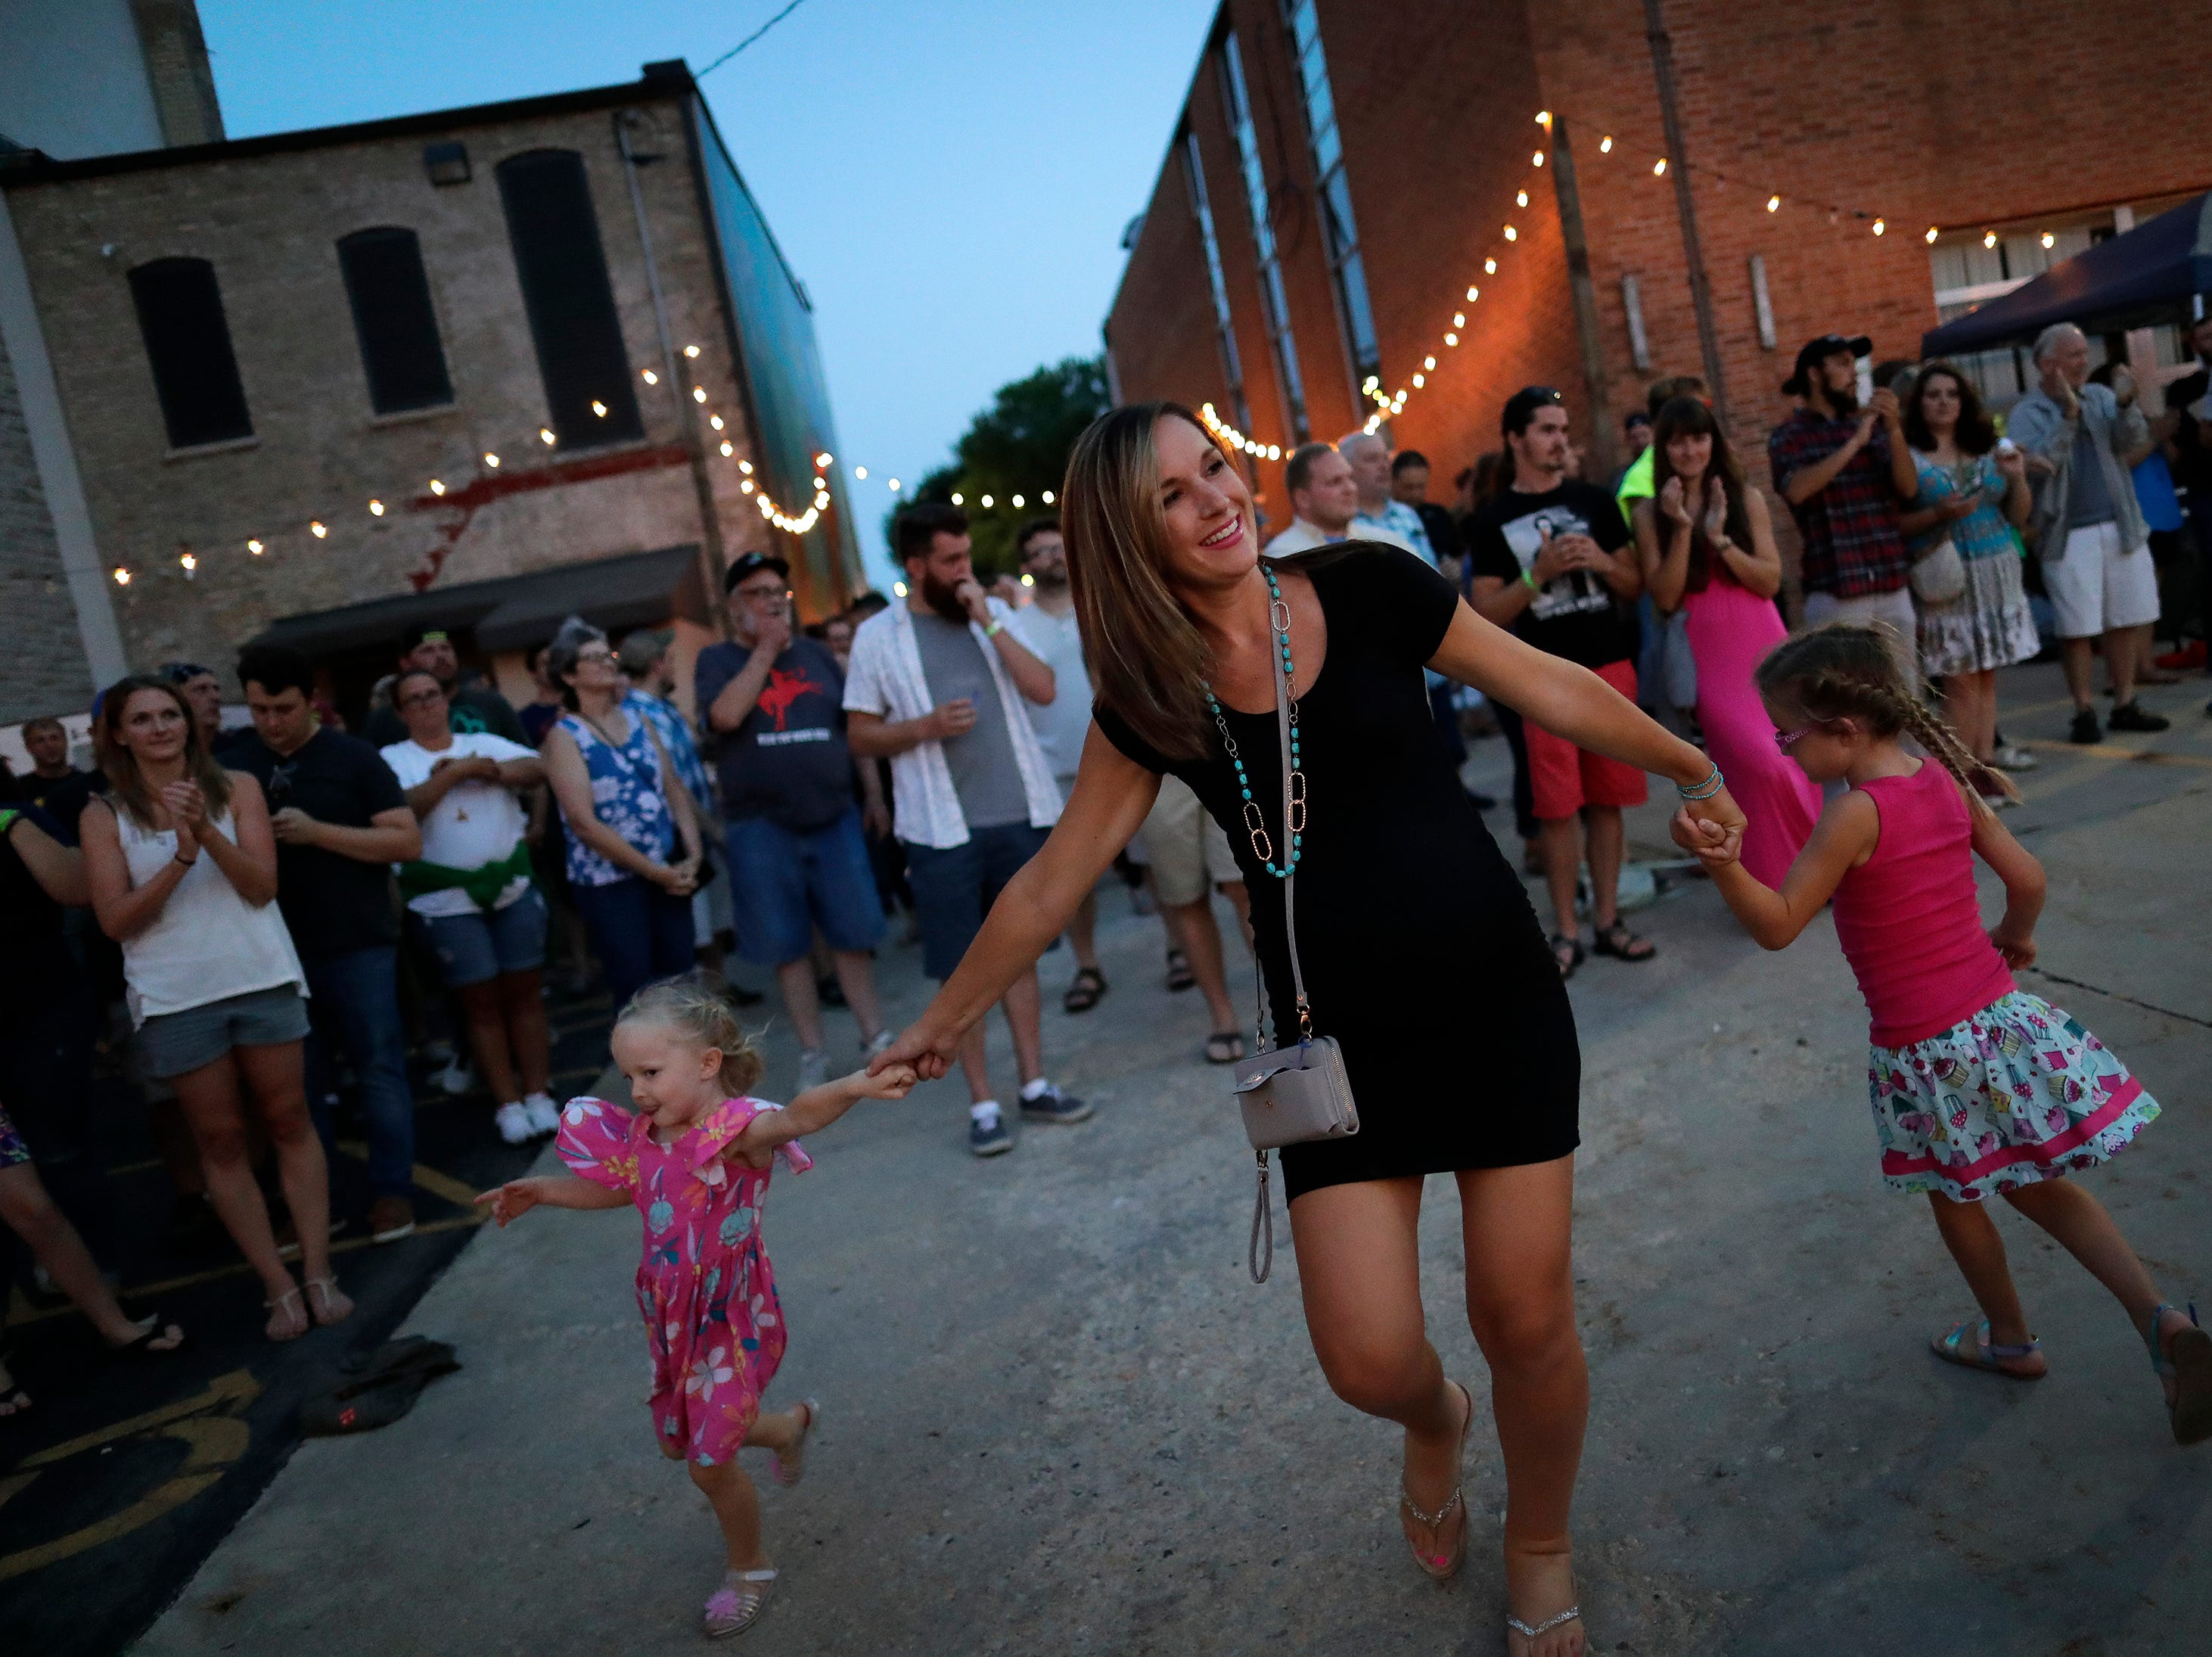 Jessica Strike of Menasha dances with her daughters Vivian, 4, left, and Melodi, 6, while listening to Good Night Gold Dust perform at the Alley Project during the Mile of Music Friday, August 3, 2018, in Appleton, Wis.  